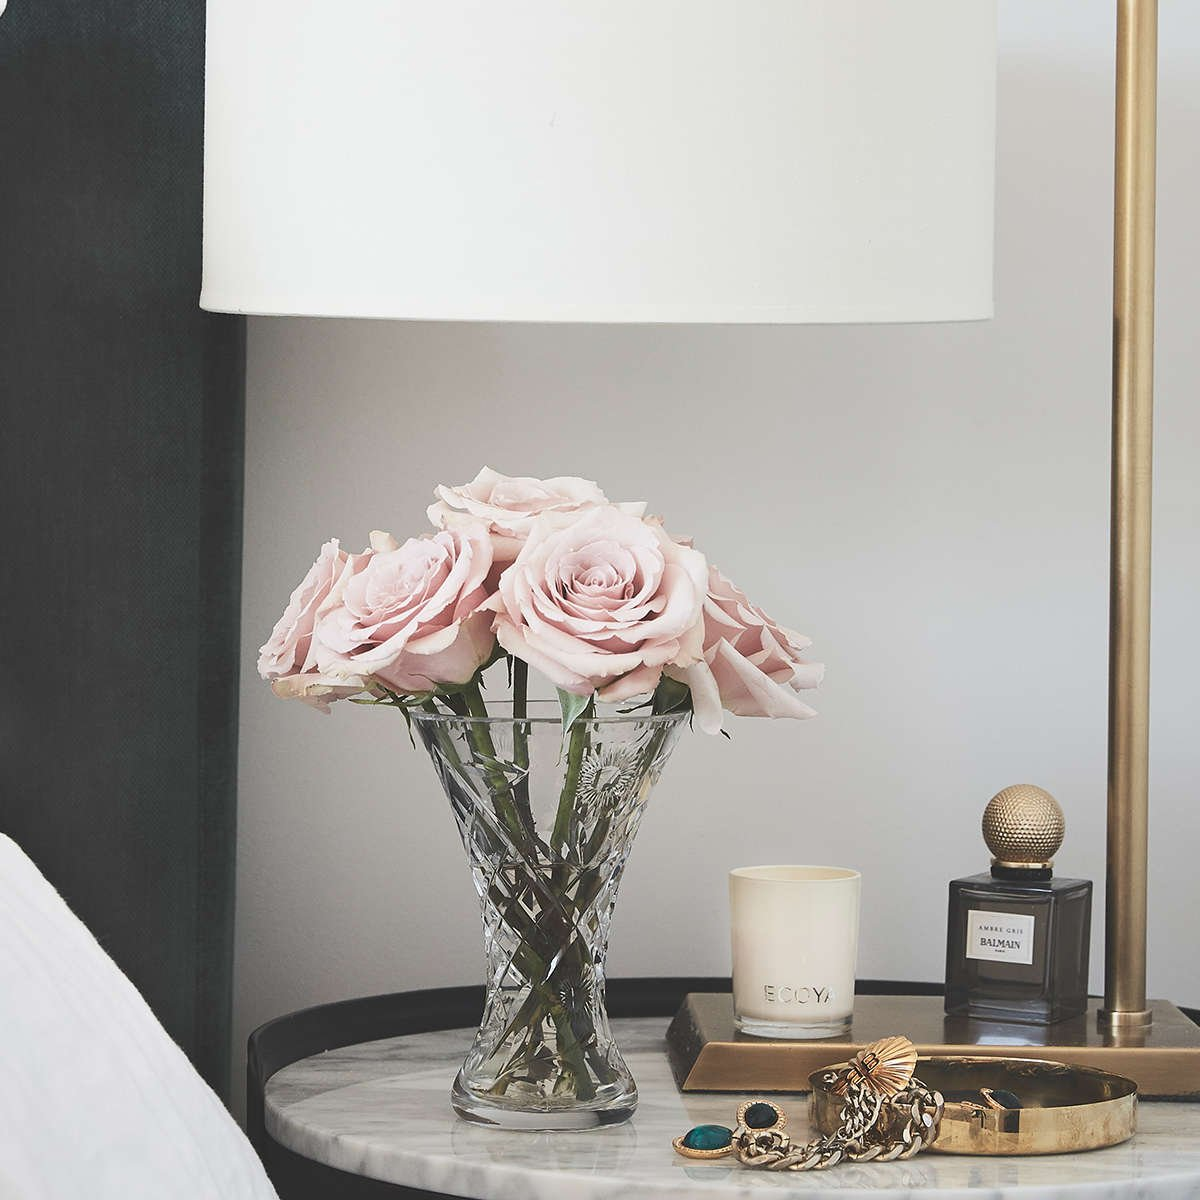 Roses on bedside table